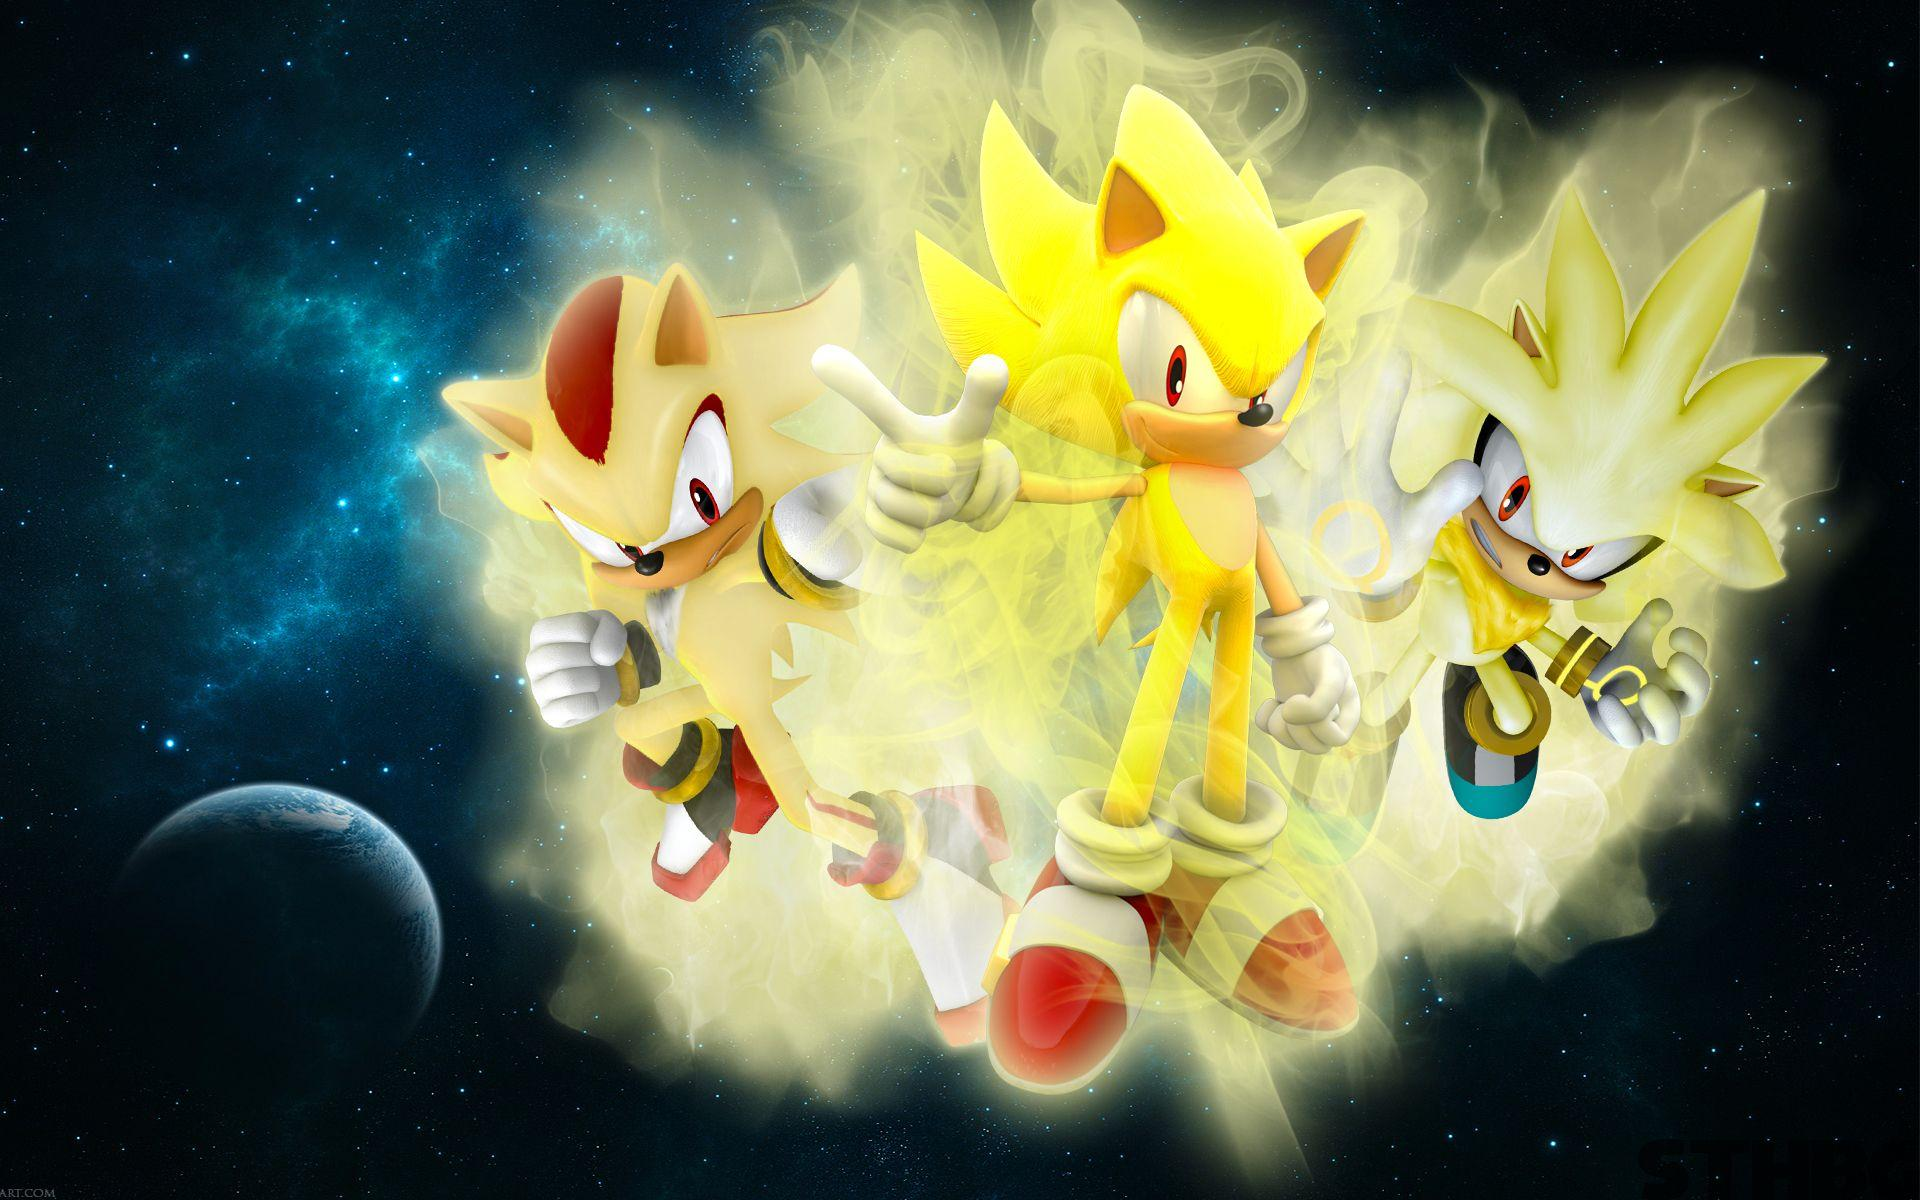 Picts Of Super Sonic And Silver And Shadow Wallpapers Hd Wallpaper Cave